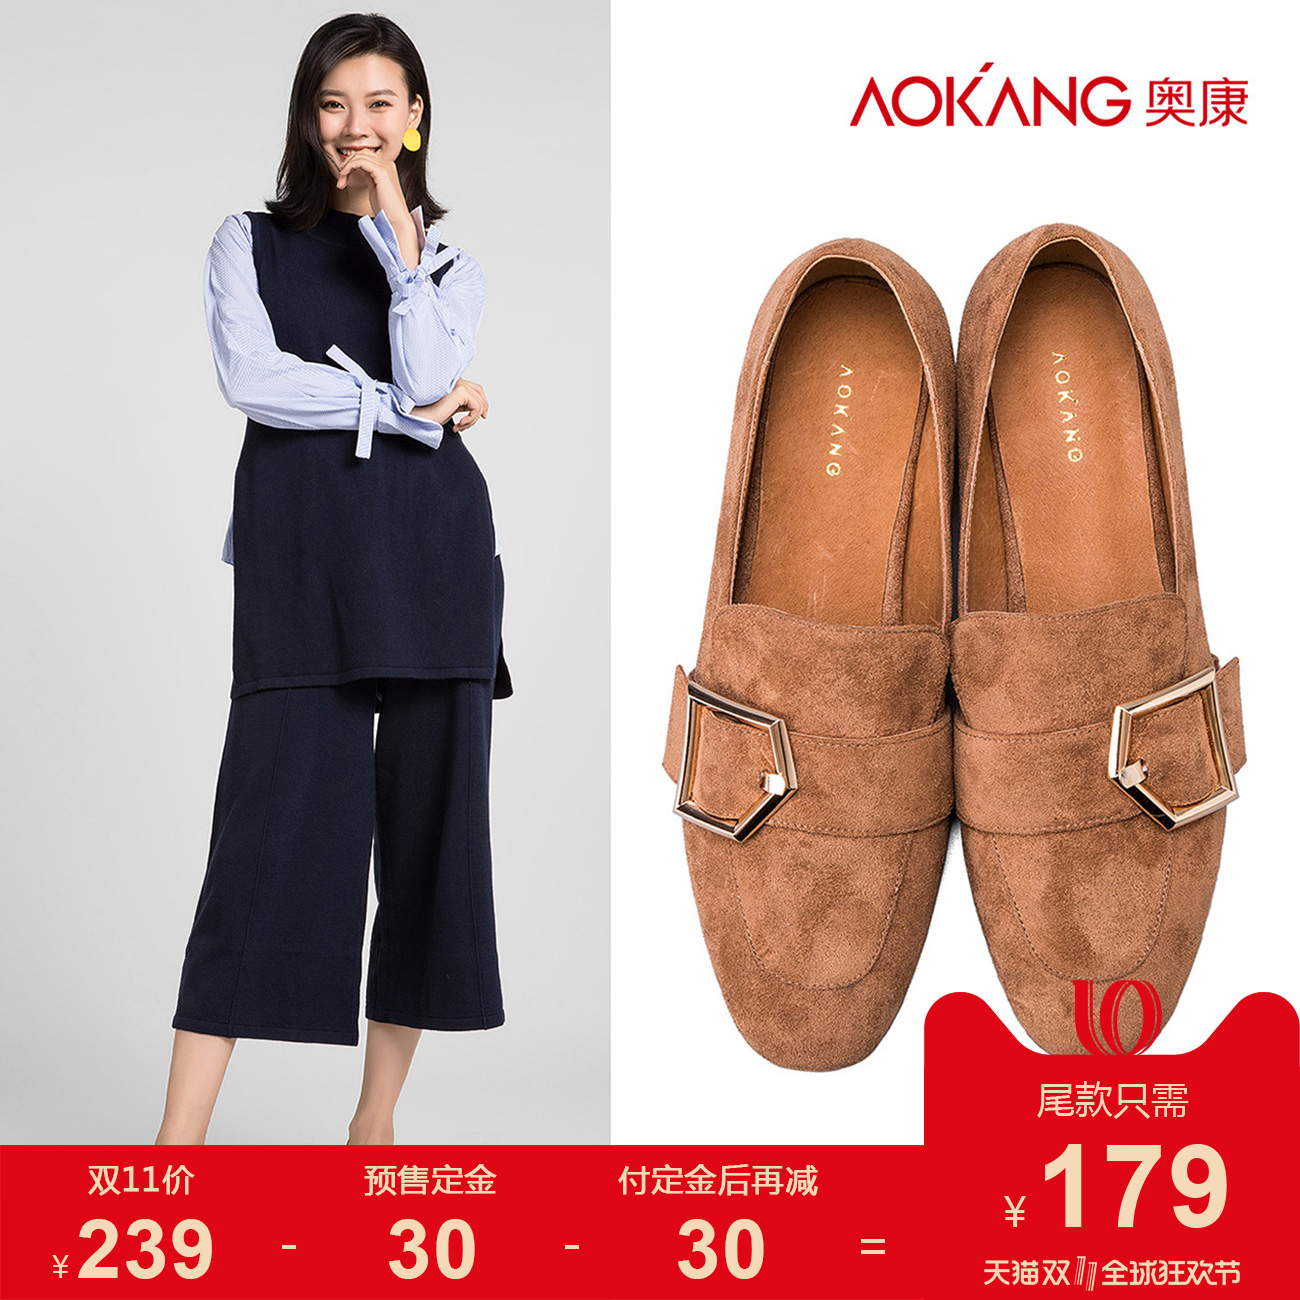 Aokang women's shoes square toe set single shoes women's Retro thick heels fashion women's shoes autumn